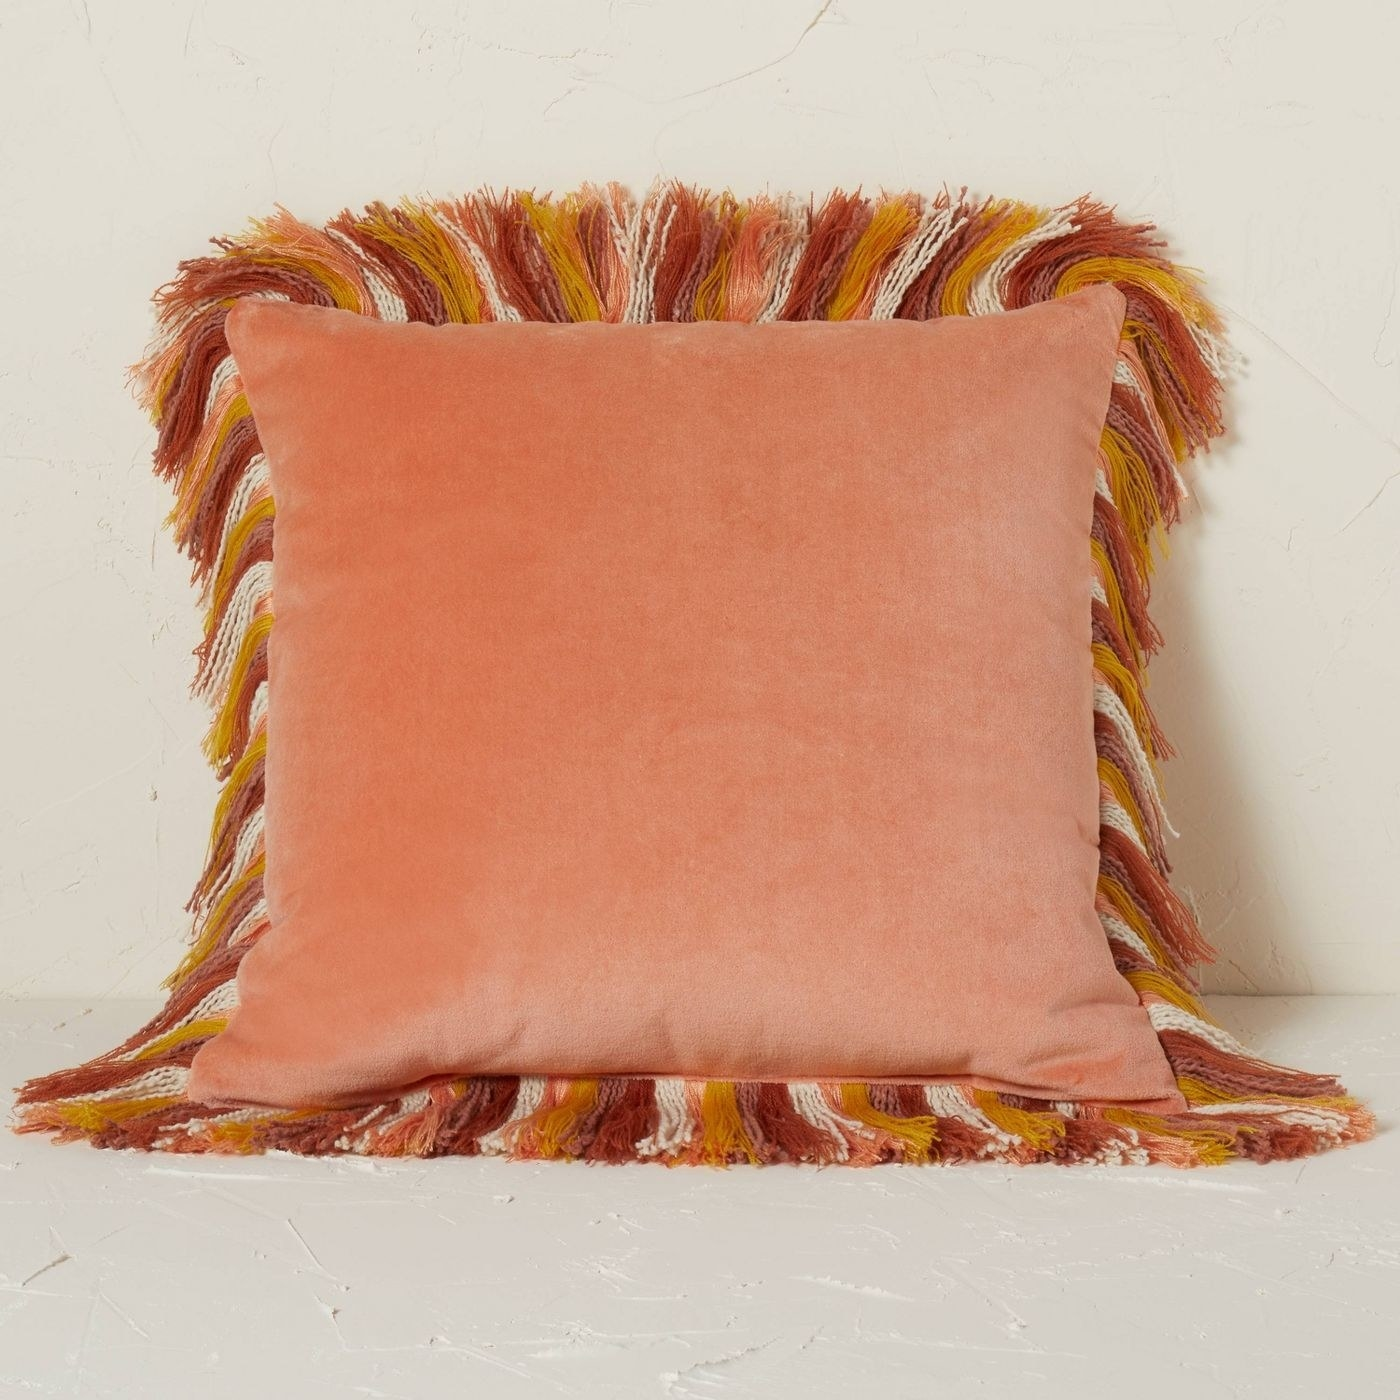 the terracotta pillow with multicolored fringe